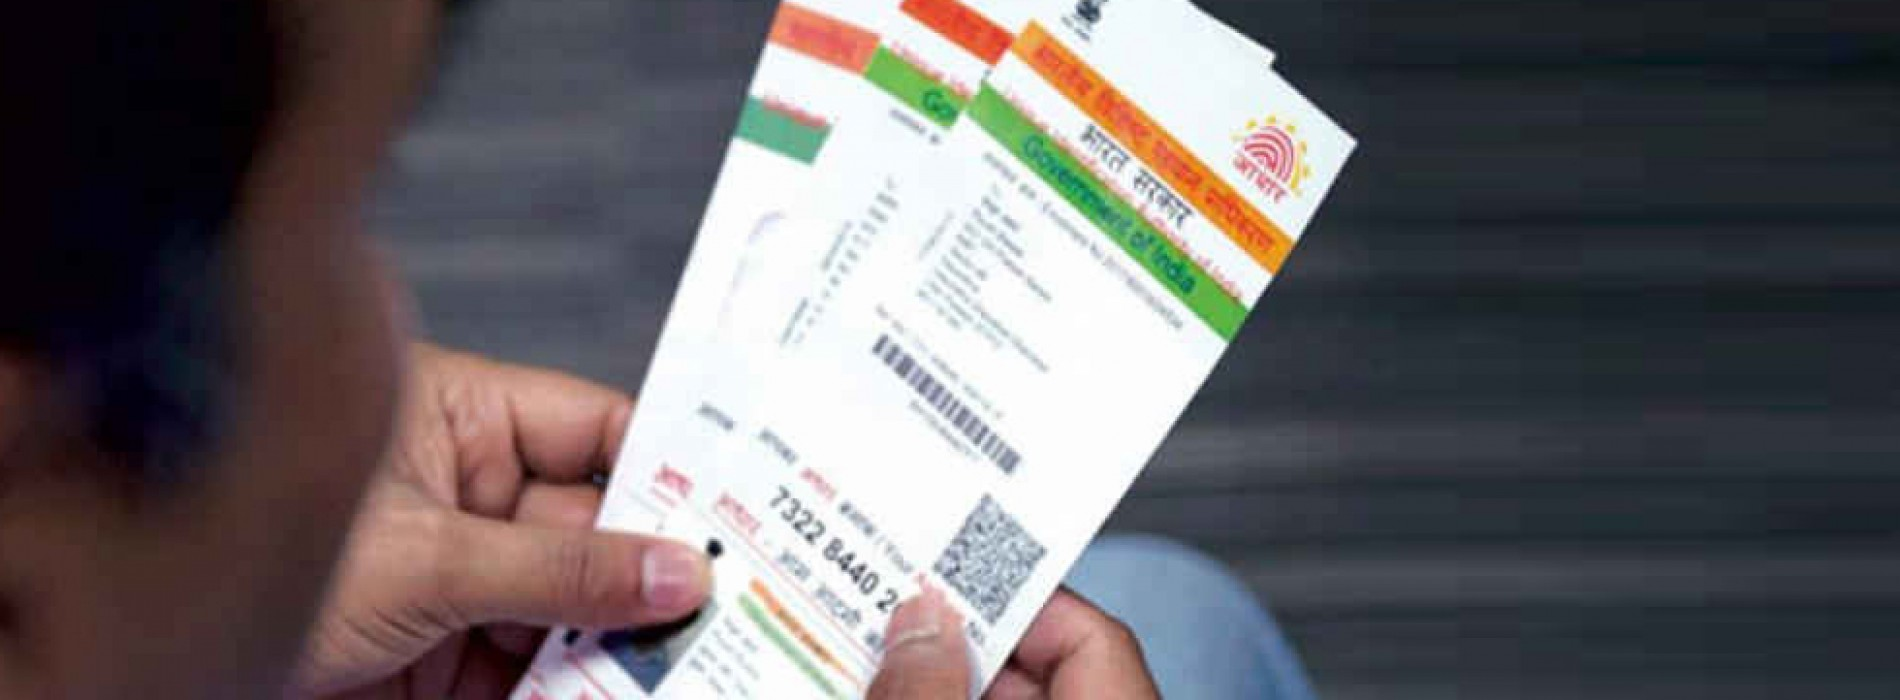 Soon UID will be mandatory to book air tickets says Civil Aviation Minister